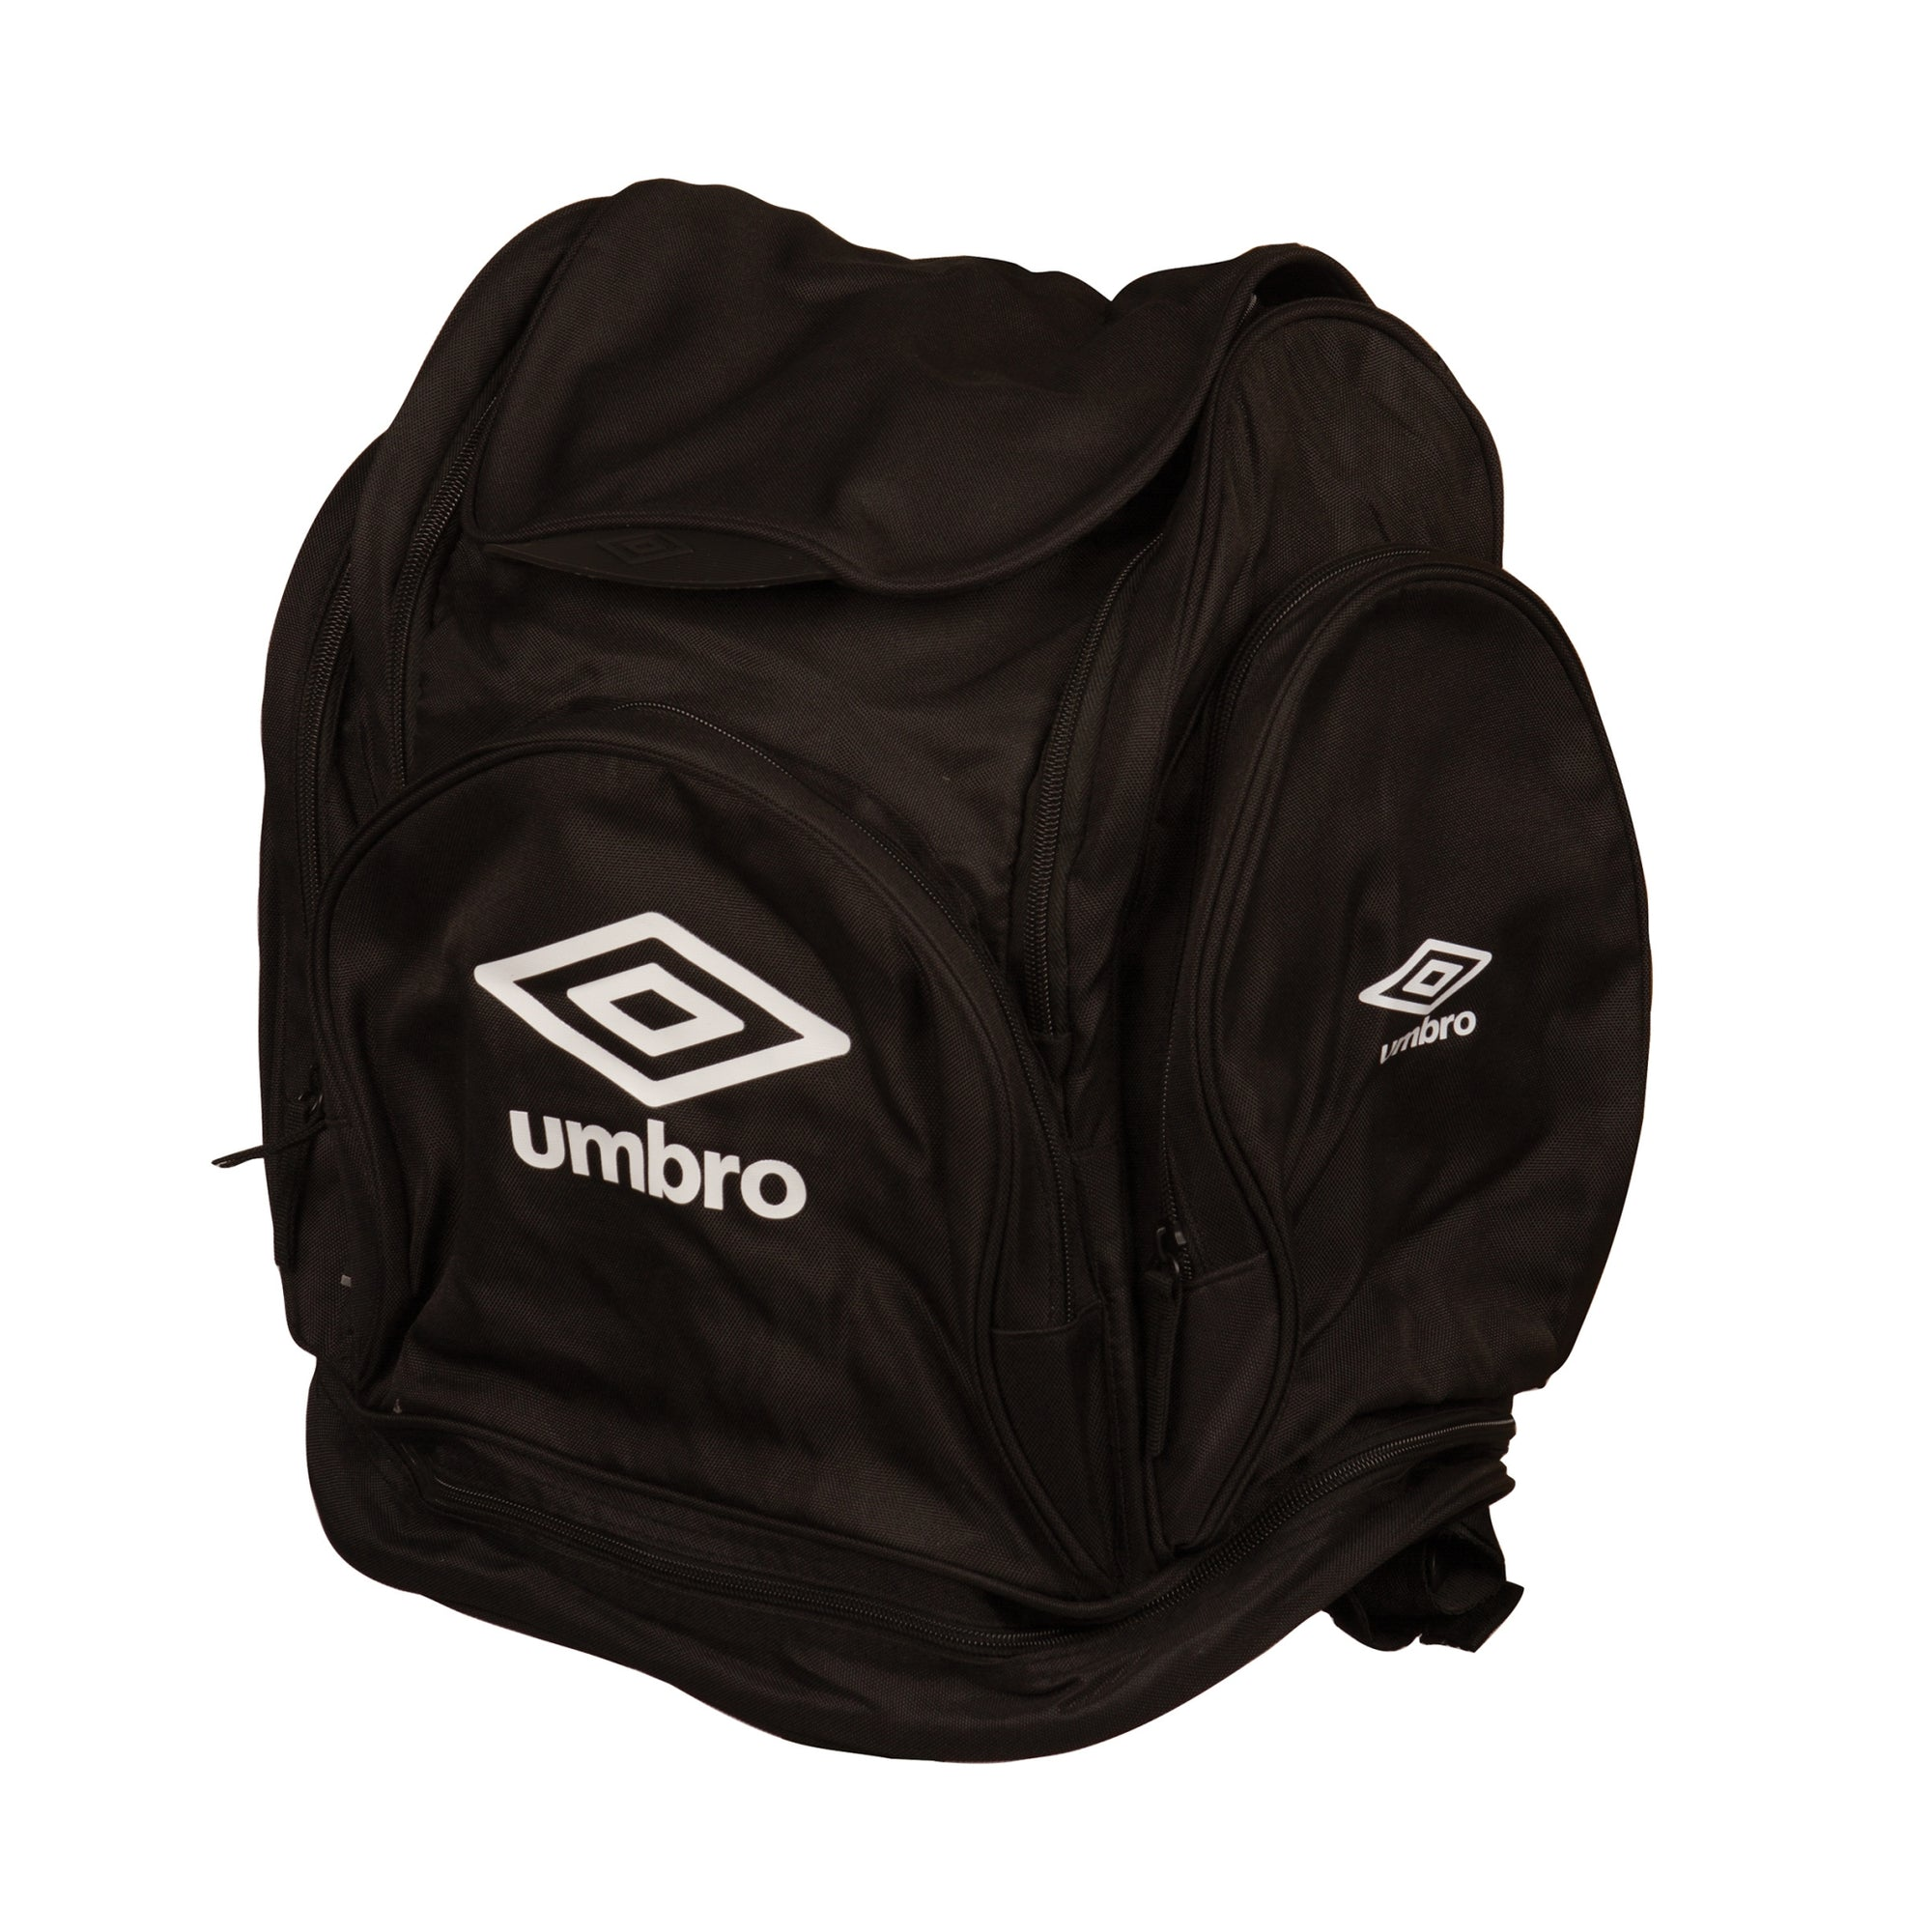 Umbro Italia Backpack - Black